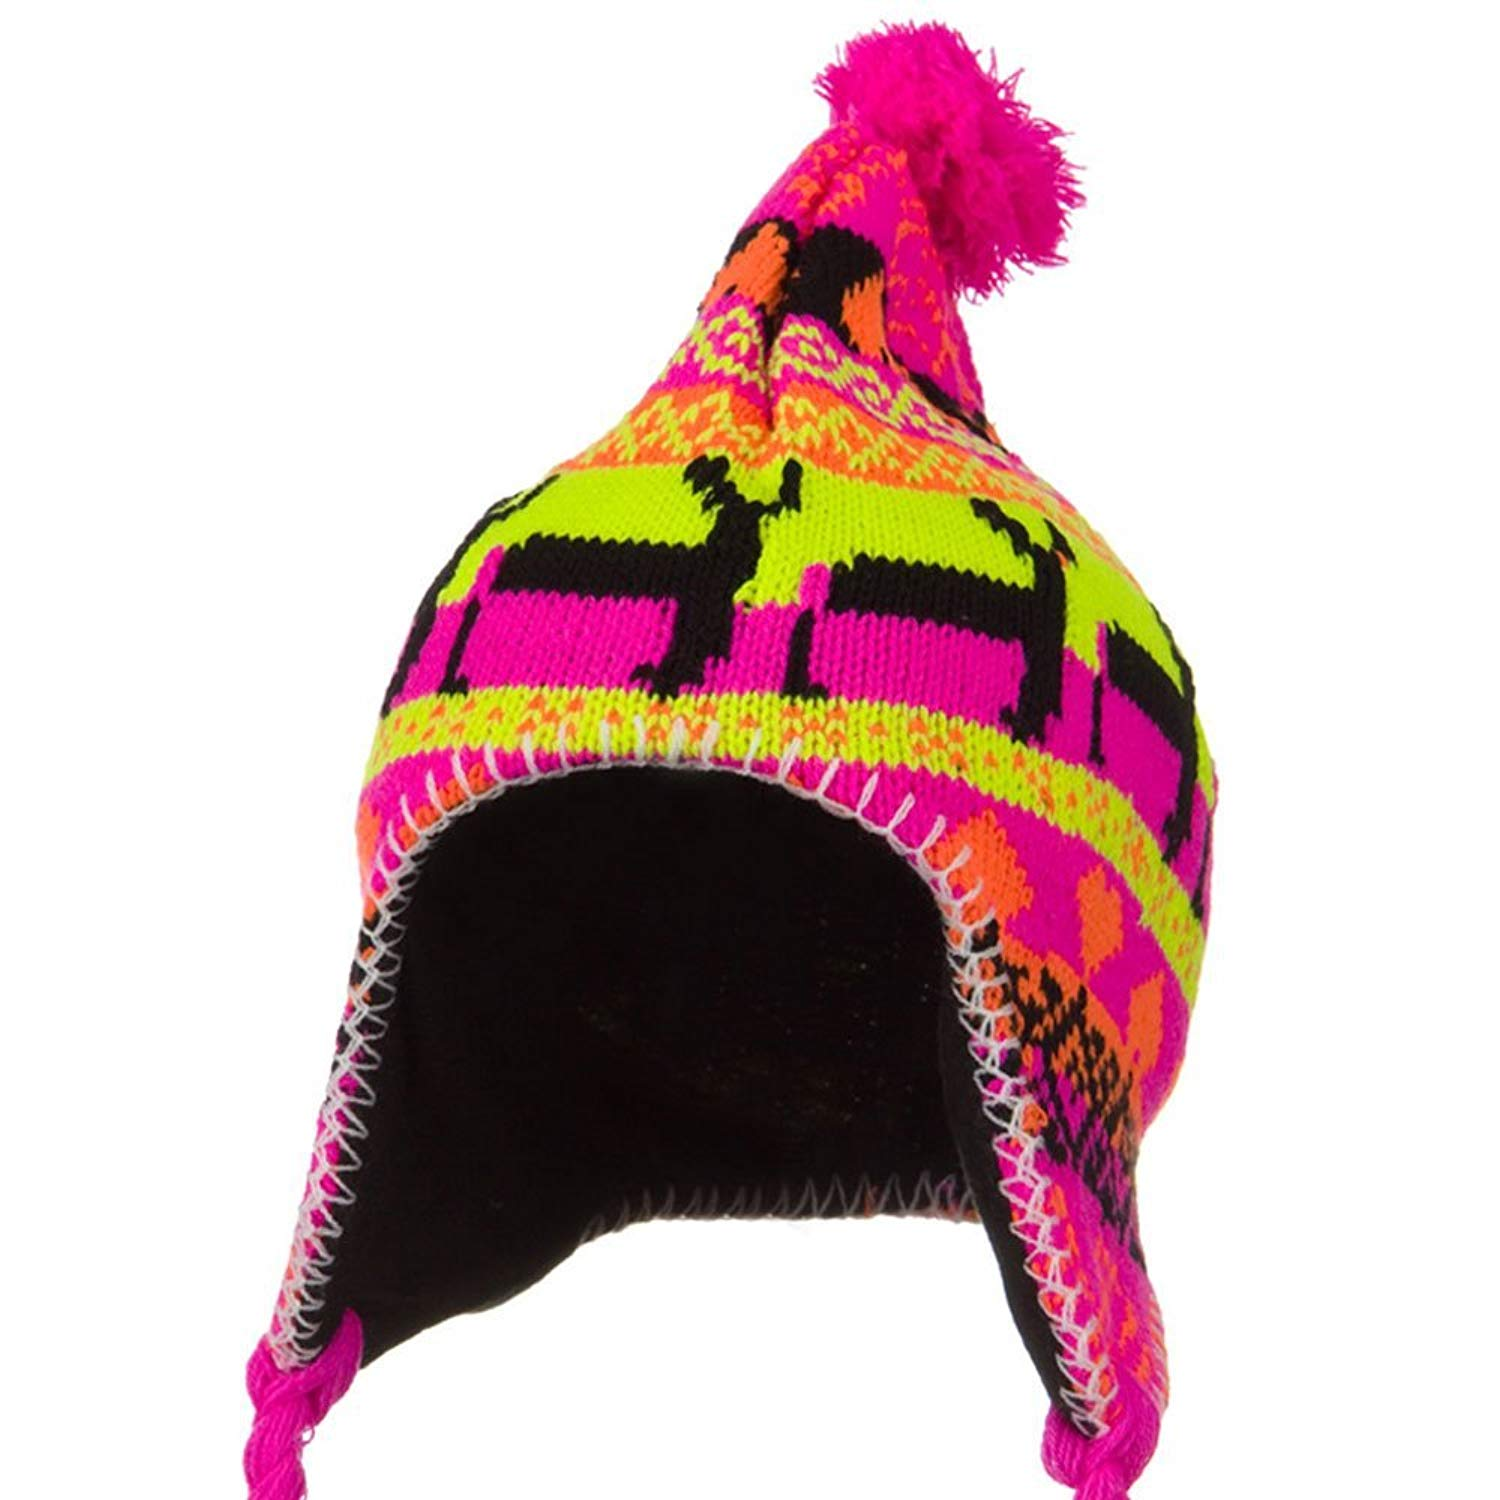 5b56df85ad1 Get Quotations · Solid Wing Neon Ear Cover Deer Knit Hat - Pink